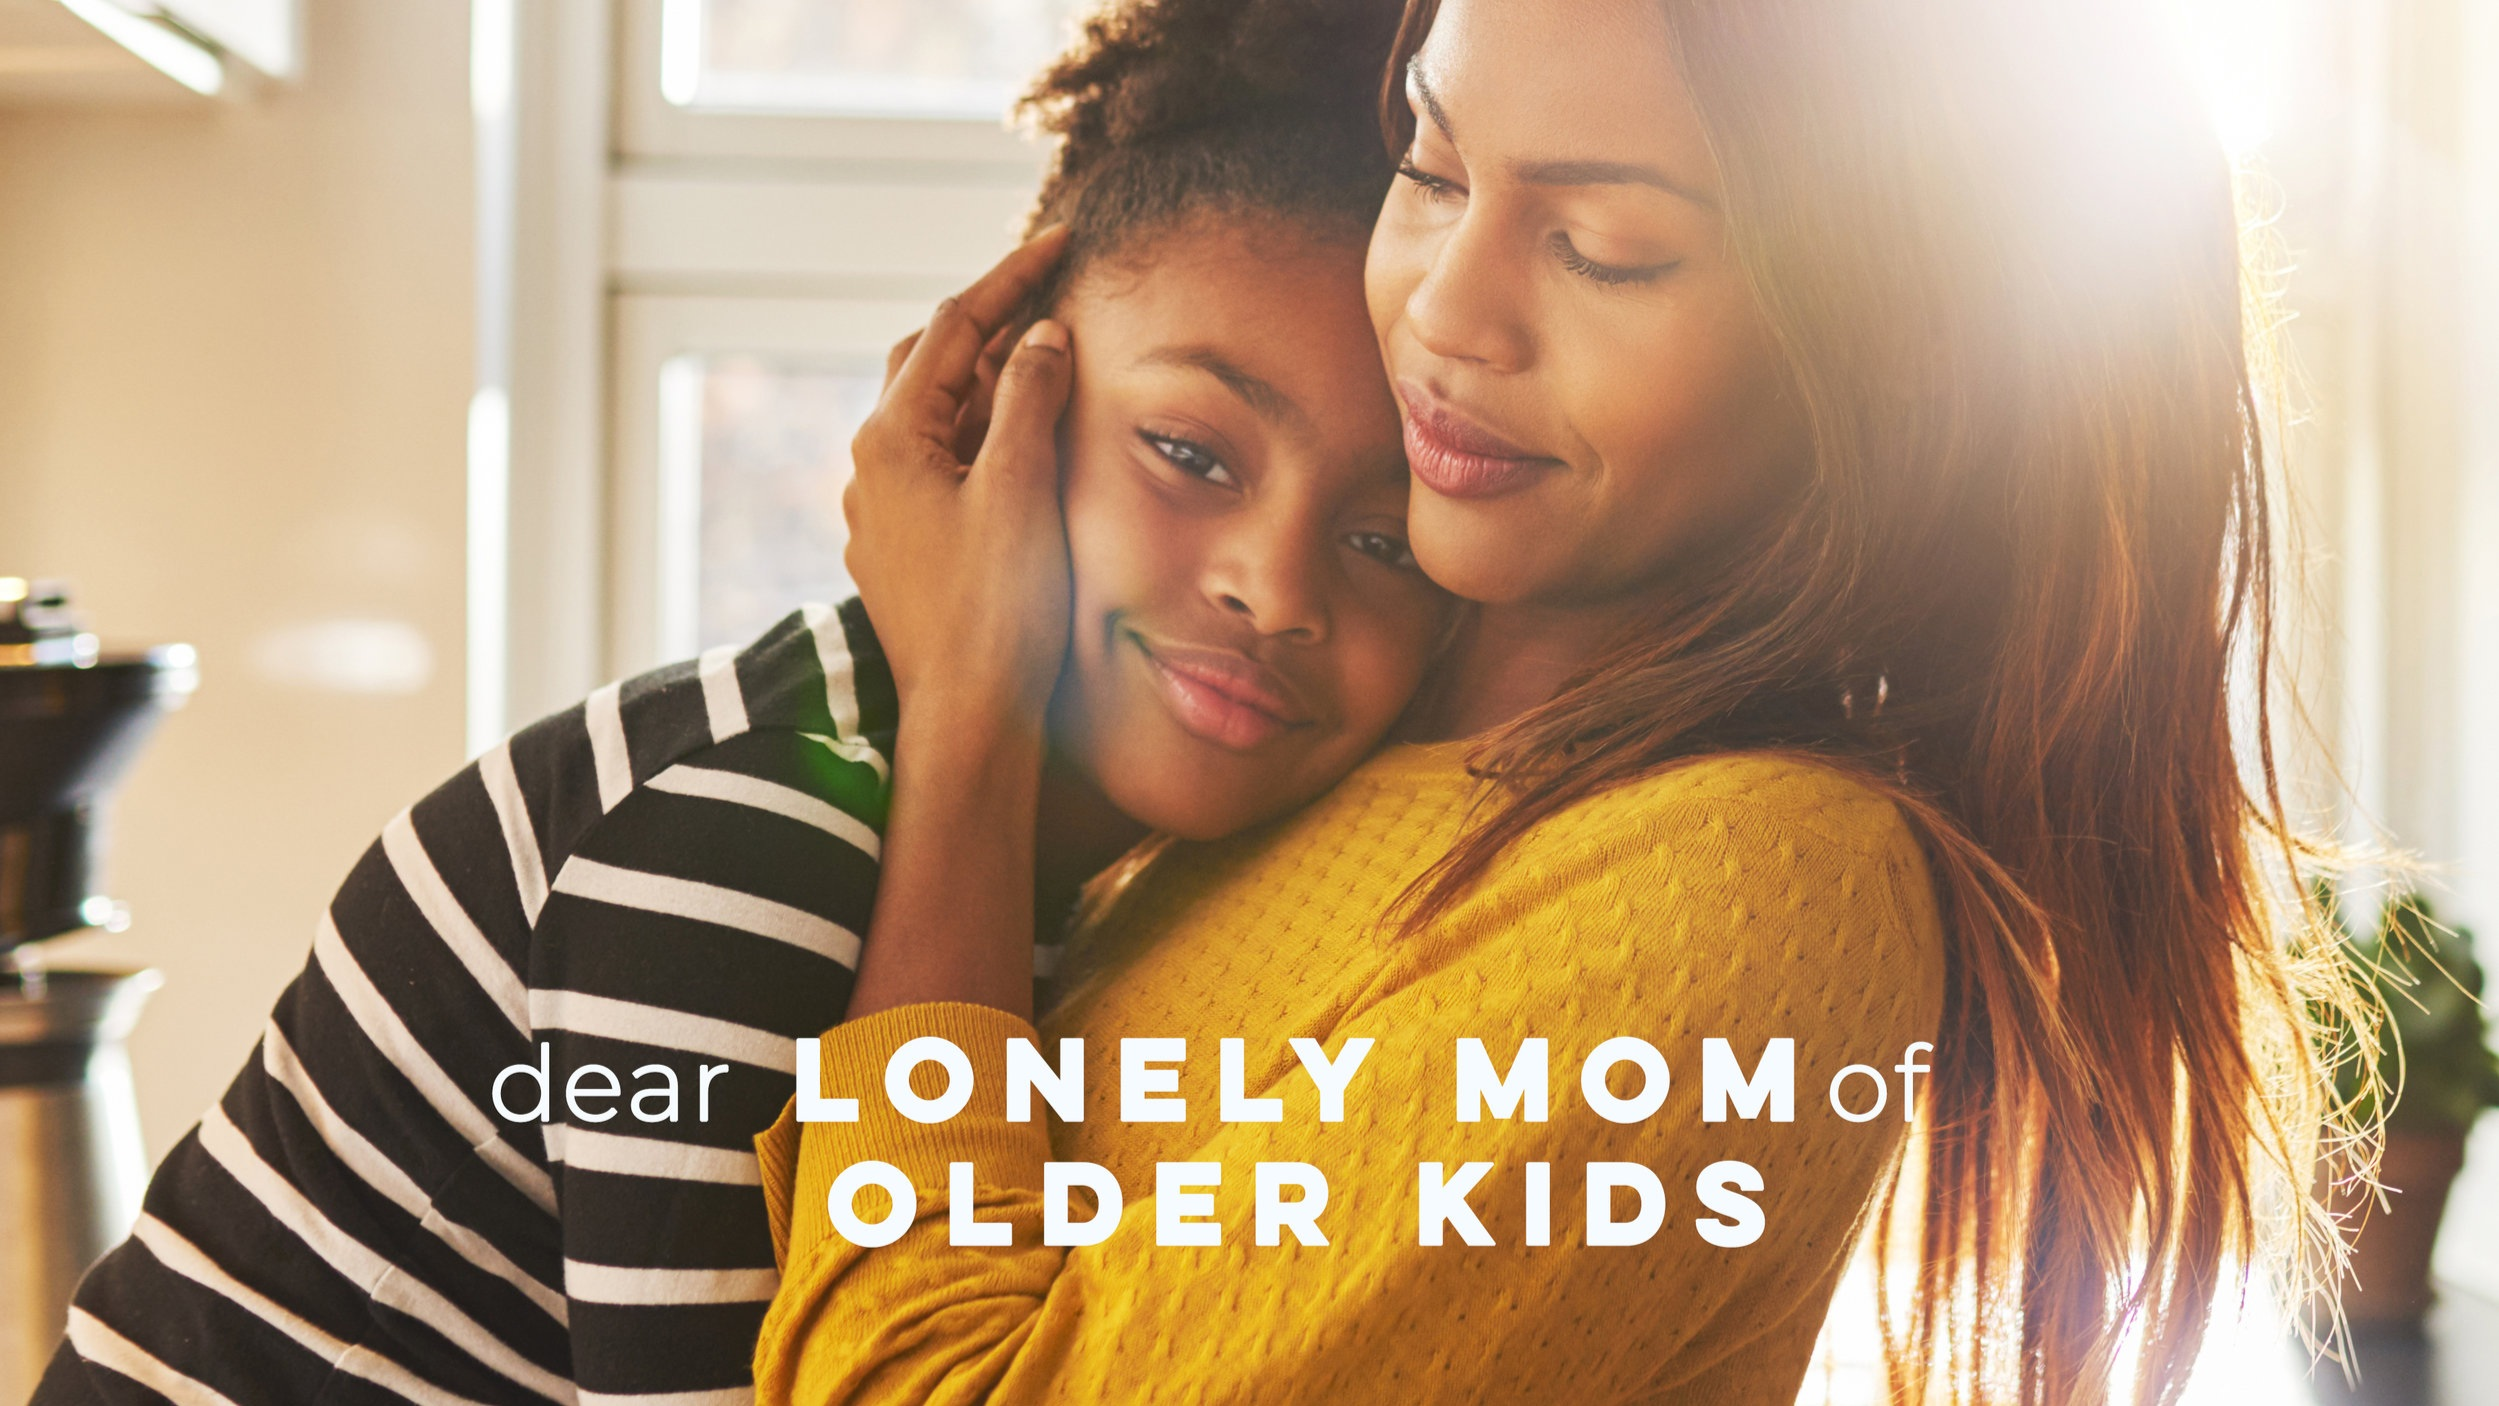 "According to results from    Cigna's U.S. Loneliness Index   , a survey of more than 20,000 American adults ages 18 and older, nearly half of Americans report sometimes or always feeling alone or left out. Last week,    Tim DeWeese shared with our START community    that Gen Z (ages 18-22) reported the highest loneliness scores…but today's guest blogger,    Rachel Anne Ridge   , reveals that teens aren't the only ones who are lonely.    For moms of older kids, ""sharenting"" on social media can be complicated, and in the void, loneliness can creep in.    If you are in this season of parenthood, we hope you are encouraged to know that you aren't alone."